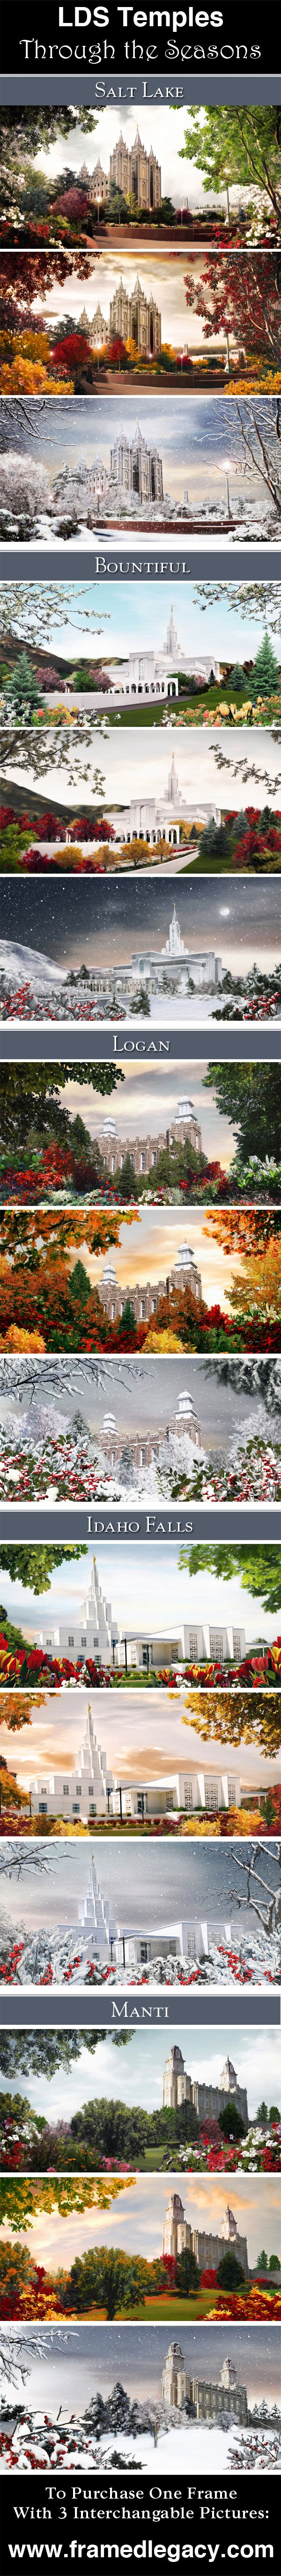 LDS Temples through the seasons by Brent Borup